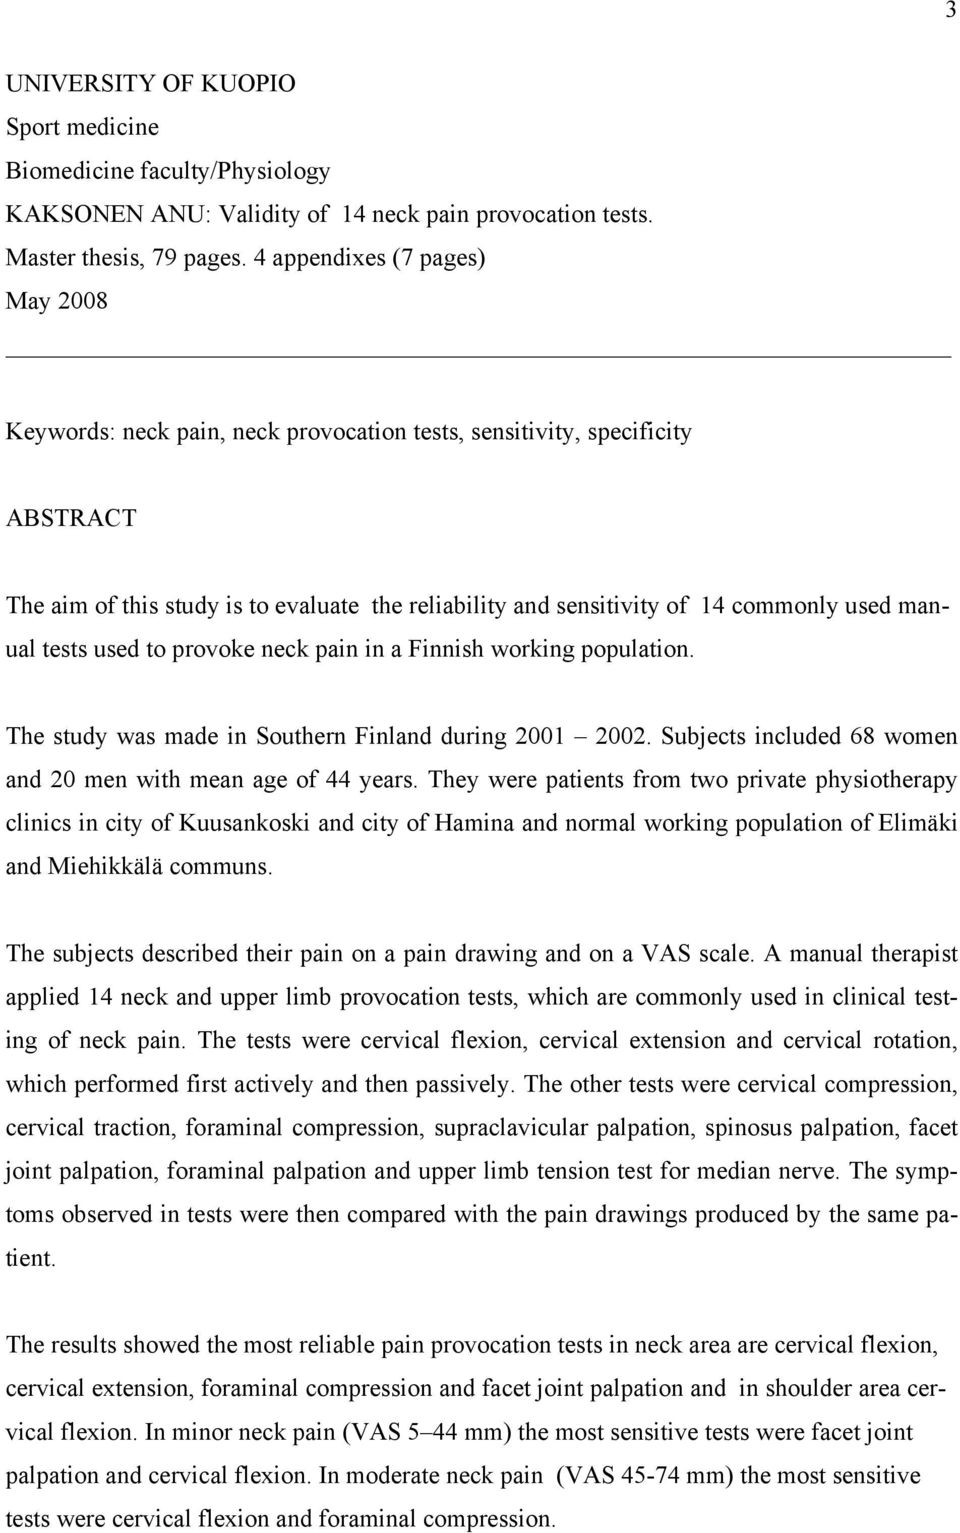 manual tests used to provoke neck pain in a Finnish working population. The study was made in Southern Finland during 2001 2002. Subjects included 68 women and 20 men with mean age of 44 years.